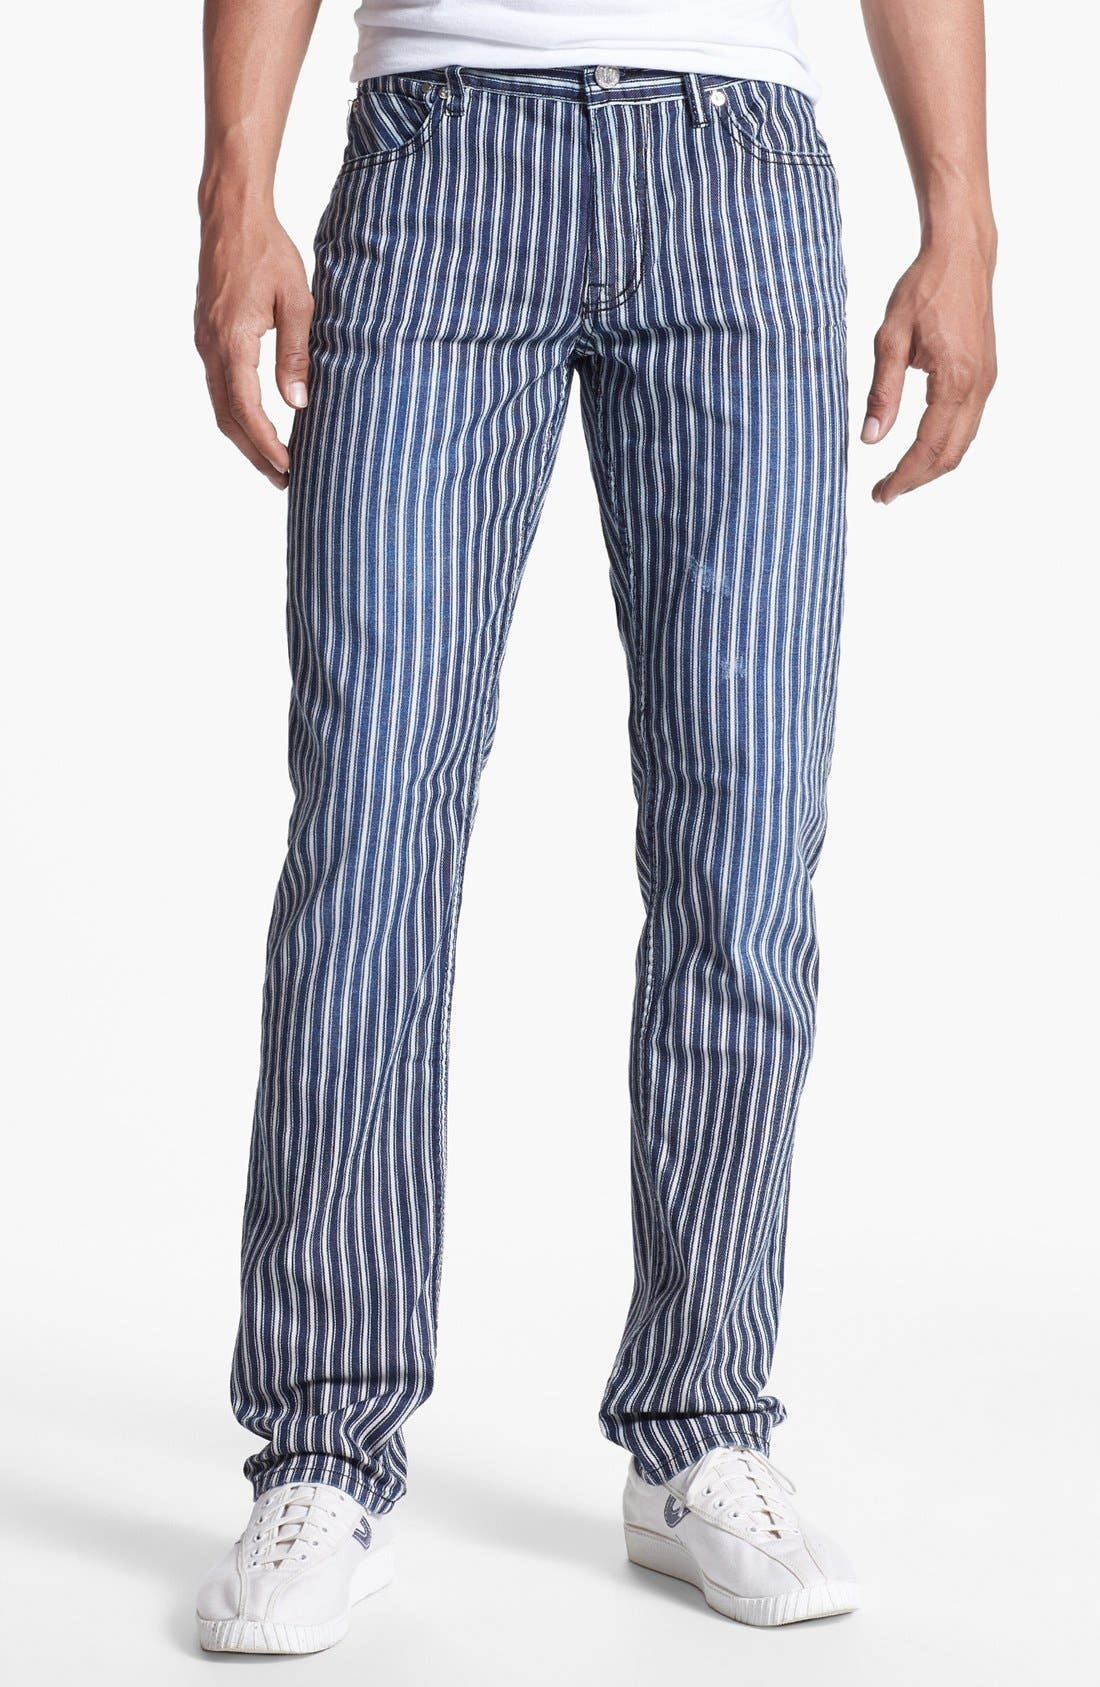 Main Image - Williamsburg Garment Company 'Grand Street' Slim Fit Jeans (Engineer Stripe)